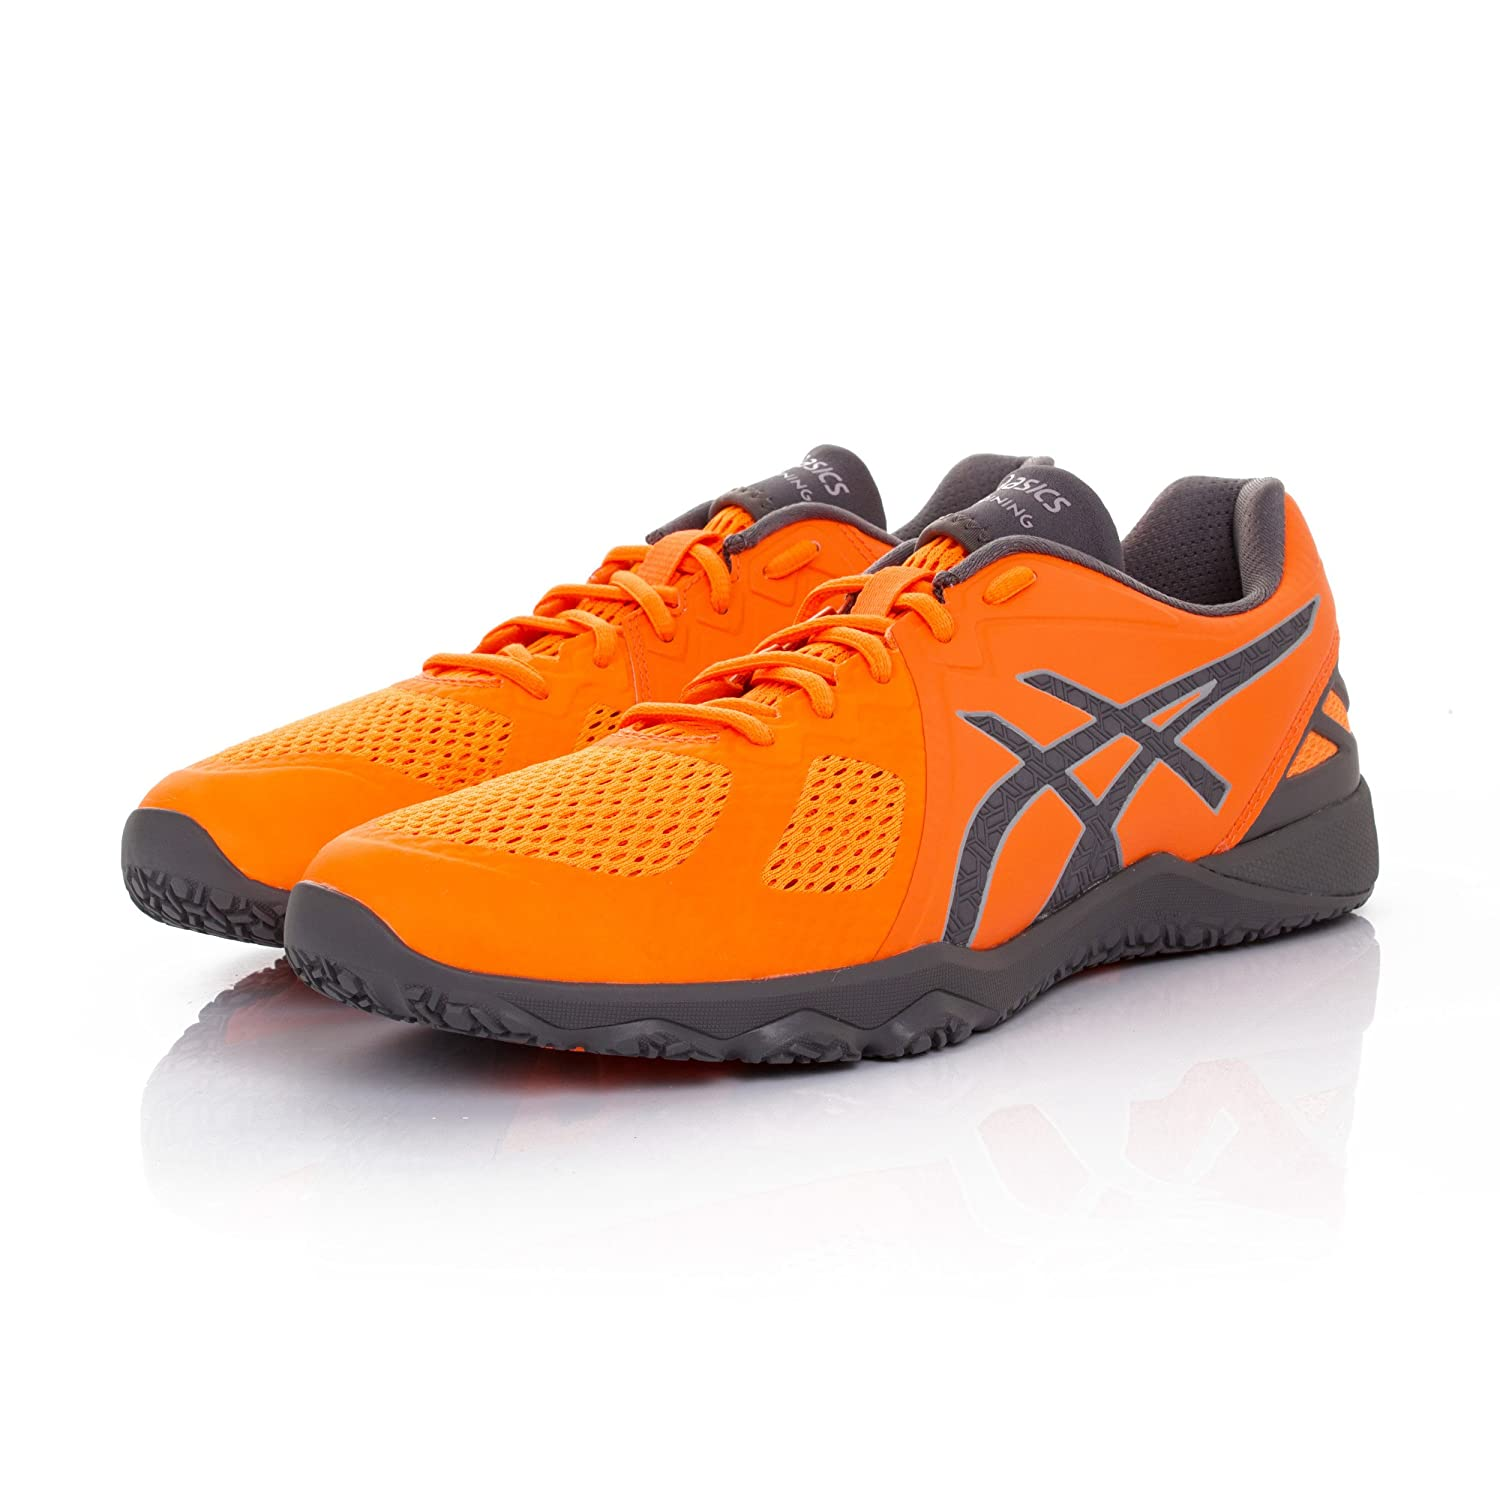 Asics Conviction X Zapatillas De Entrenamiento - SS17: Amazon.es: Zapatos y complementos